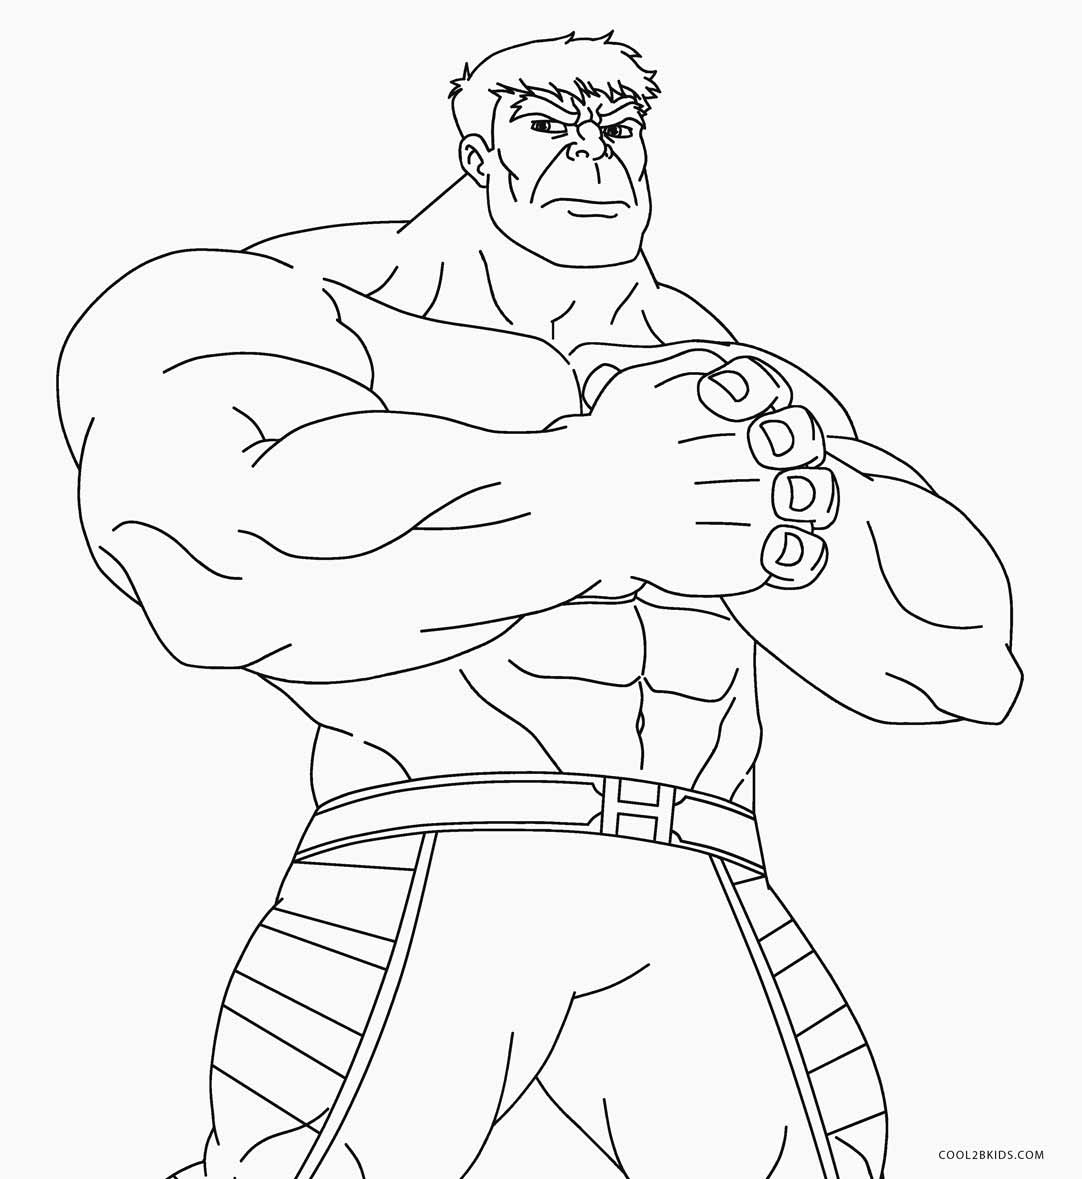 coloring pages incredible hulk - photo#35